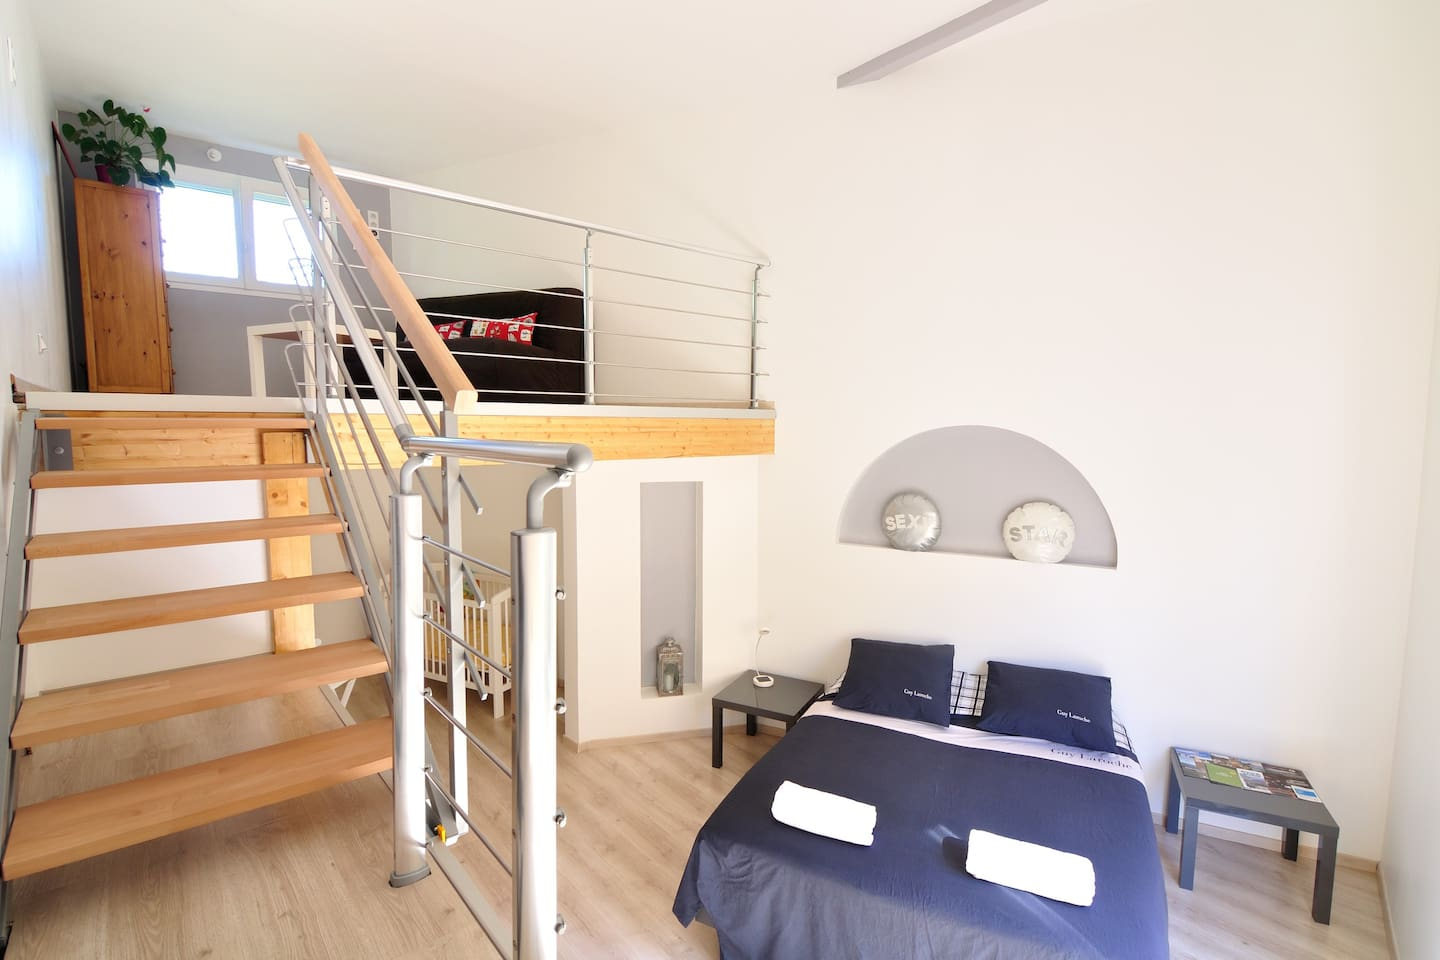 Nice room of 2 storey within a wood